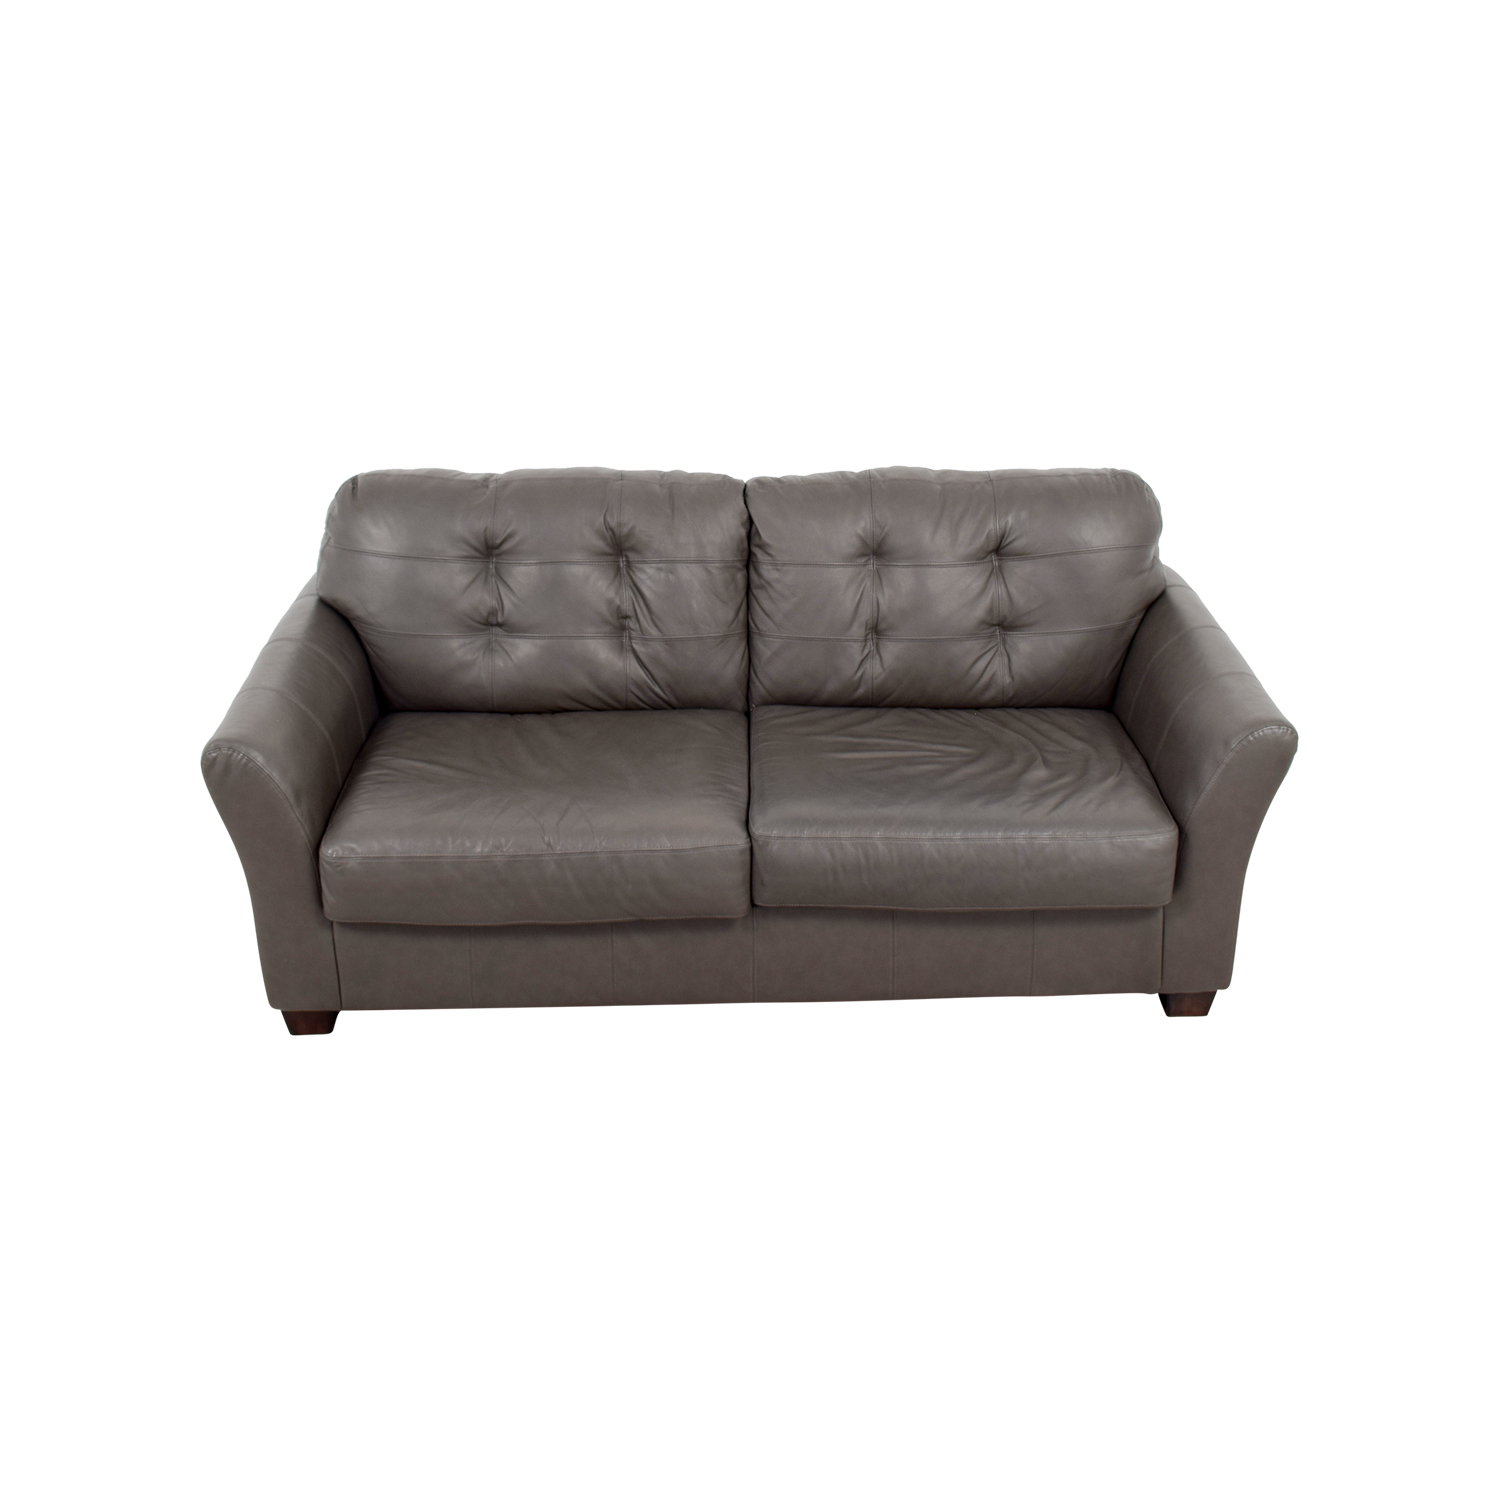 Gray Color Modern Tufted Sectional 2pc Fabric Modern Tufted Sectional Sofa 1701 Gray Sectional